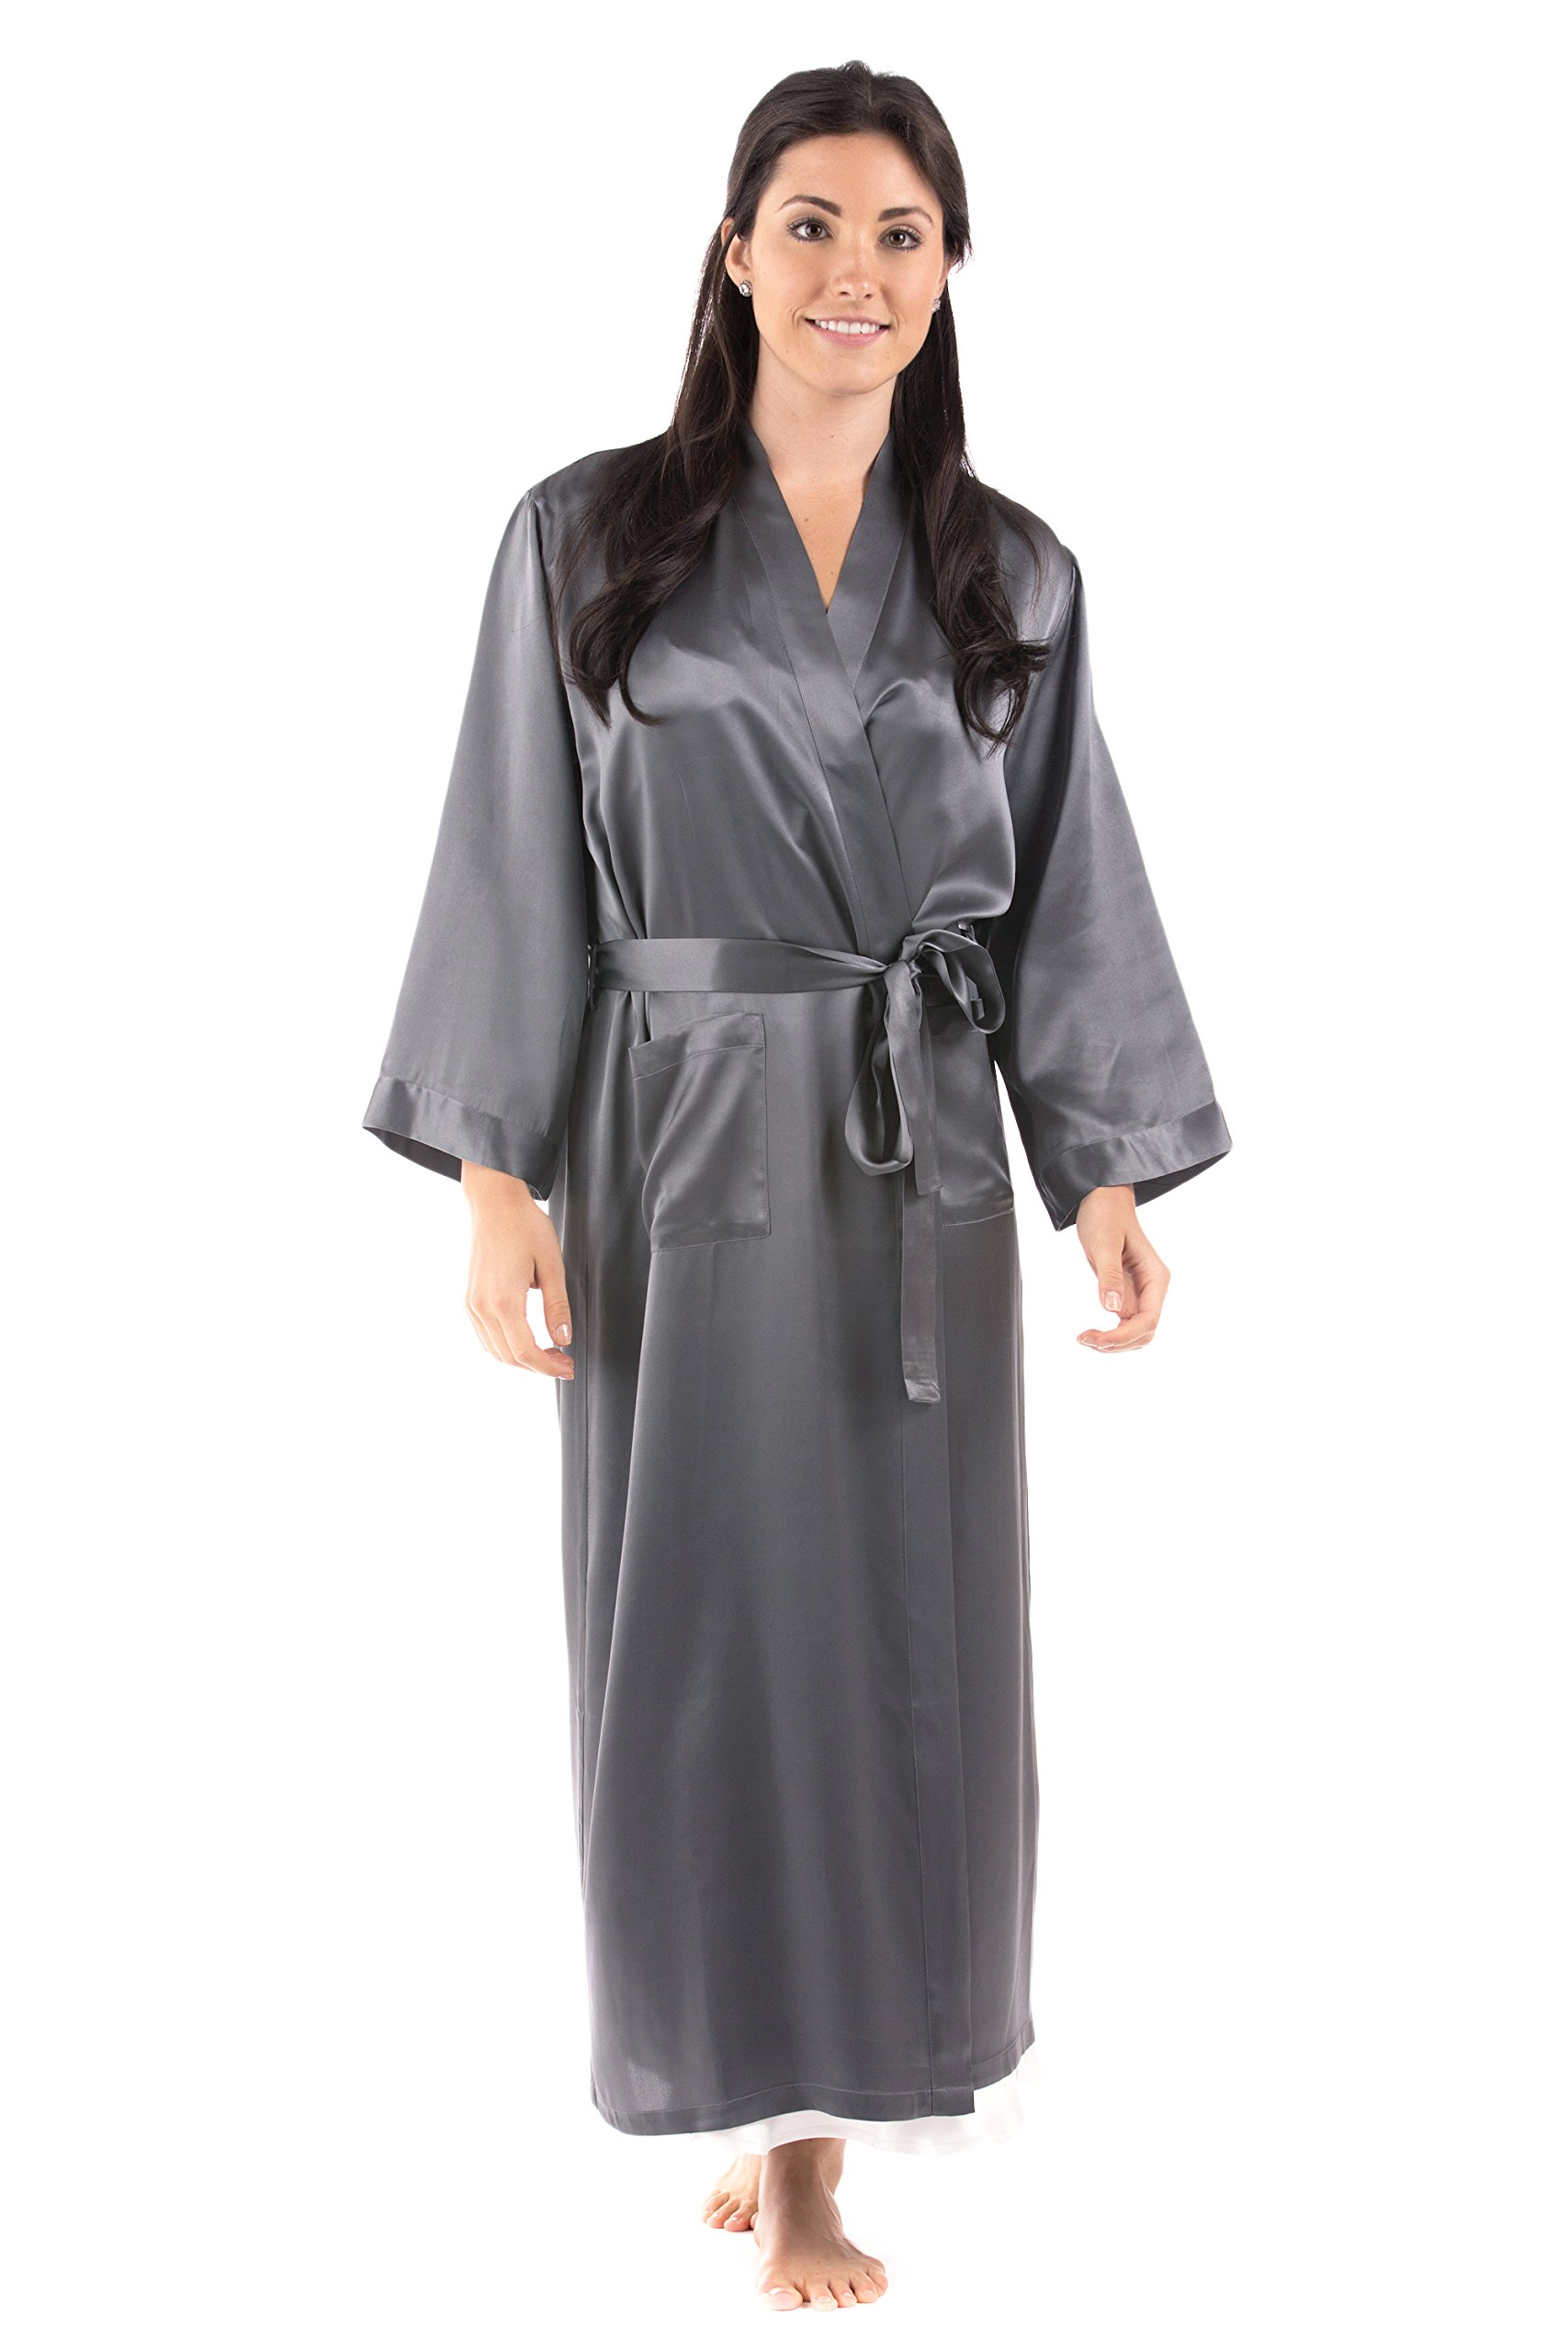 TexereSilk Women's Luxury Long Silk Robe (Pewter, 2X/3X) Great Gifts for Mom Sister Wife WS0101-PWT-2X3X